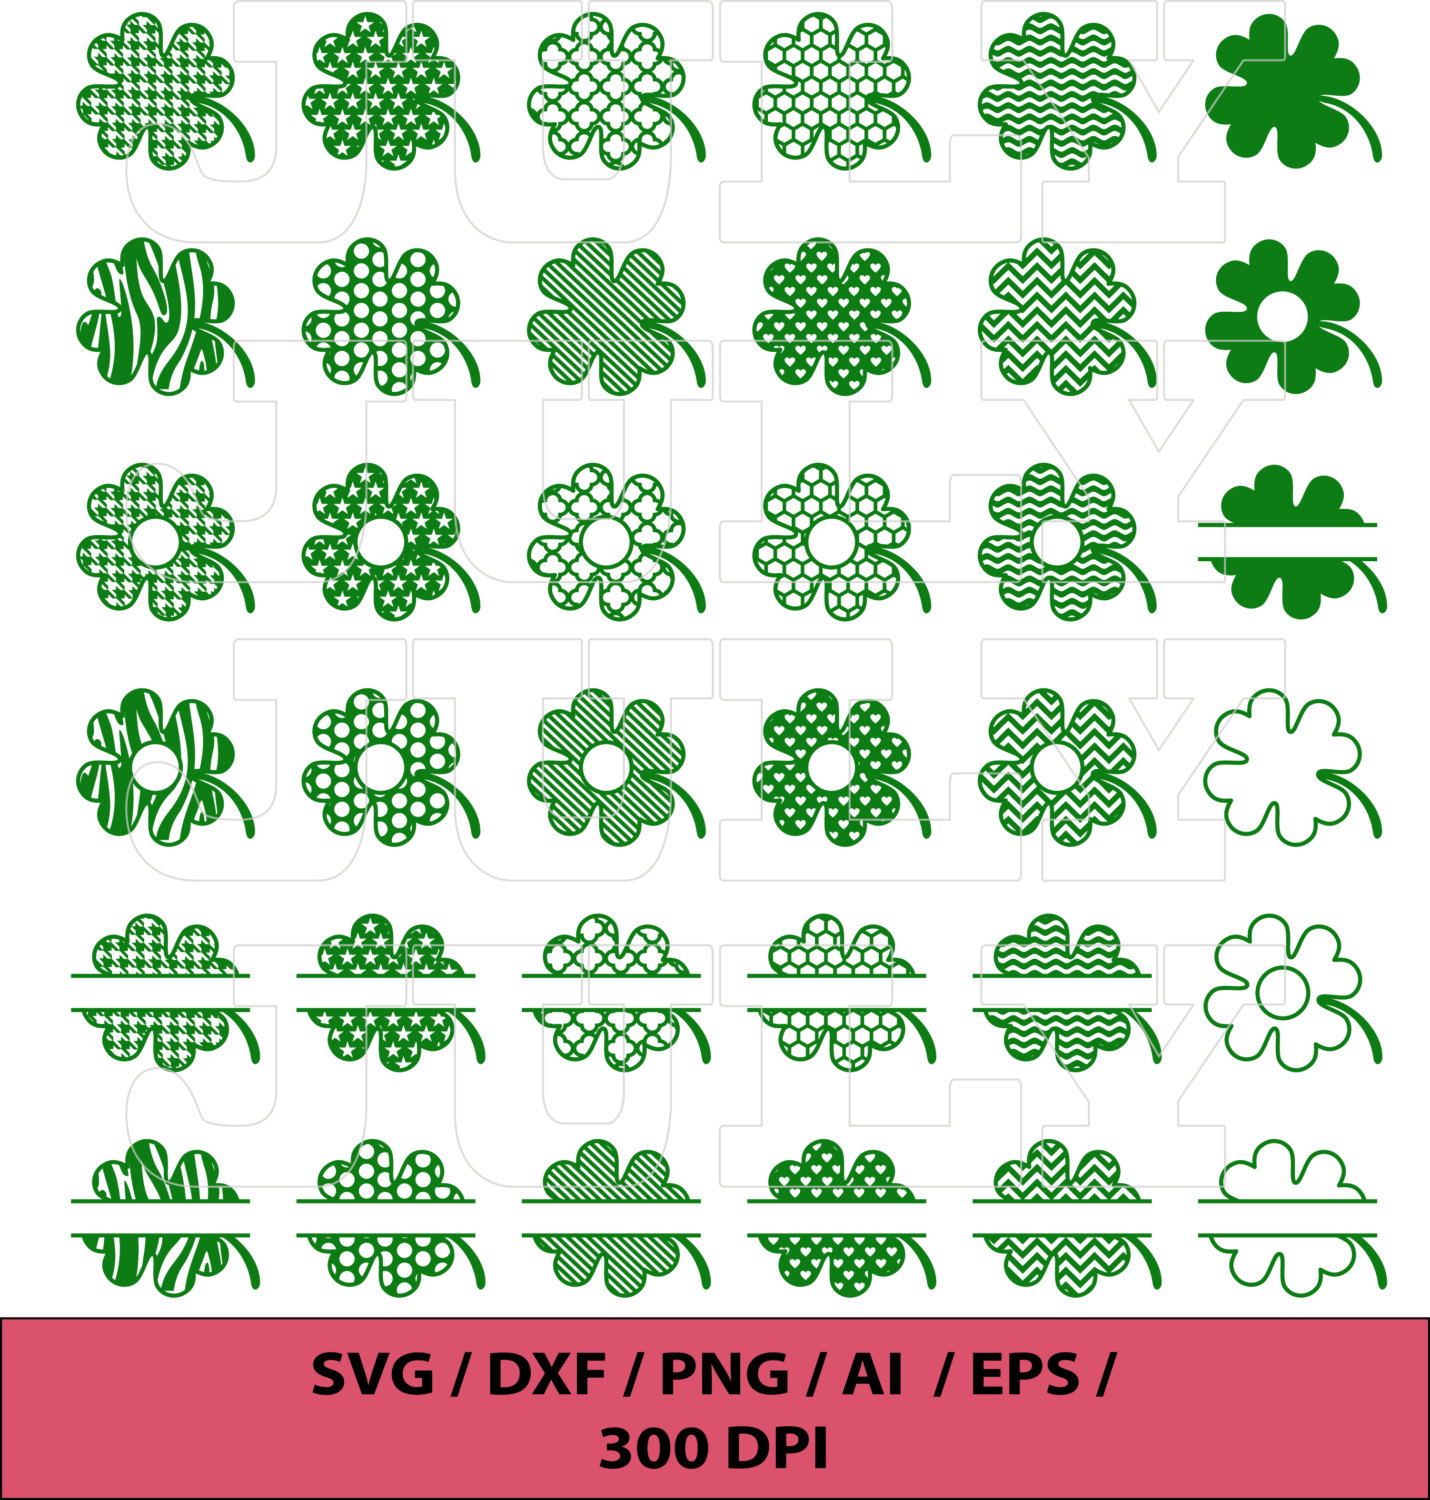 Clover svg #1, Download drawings